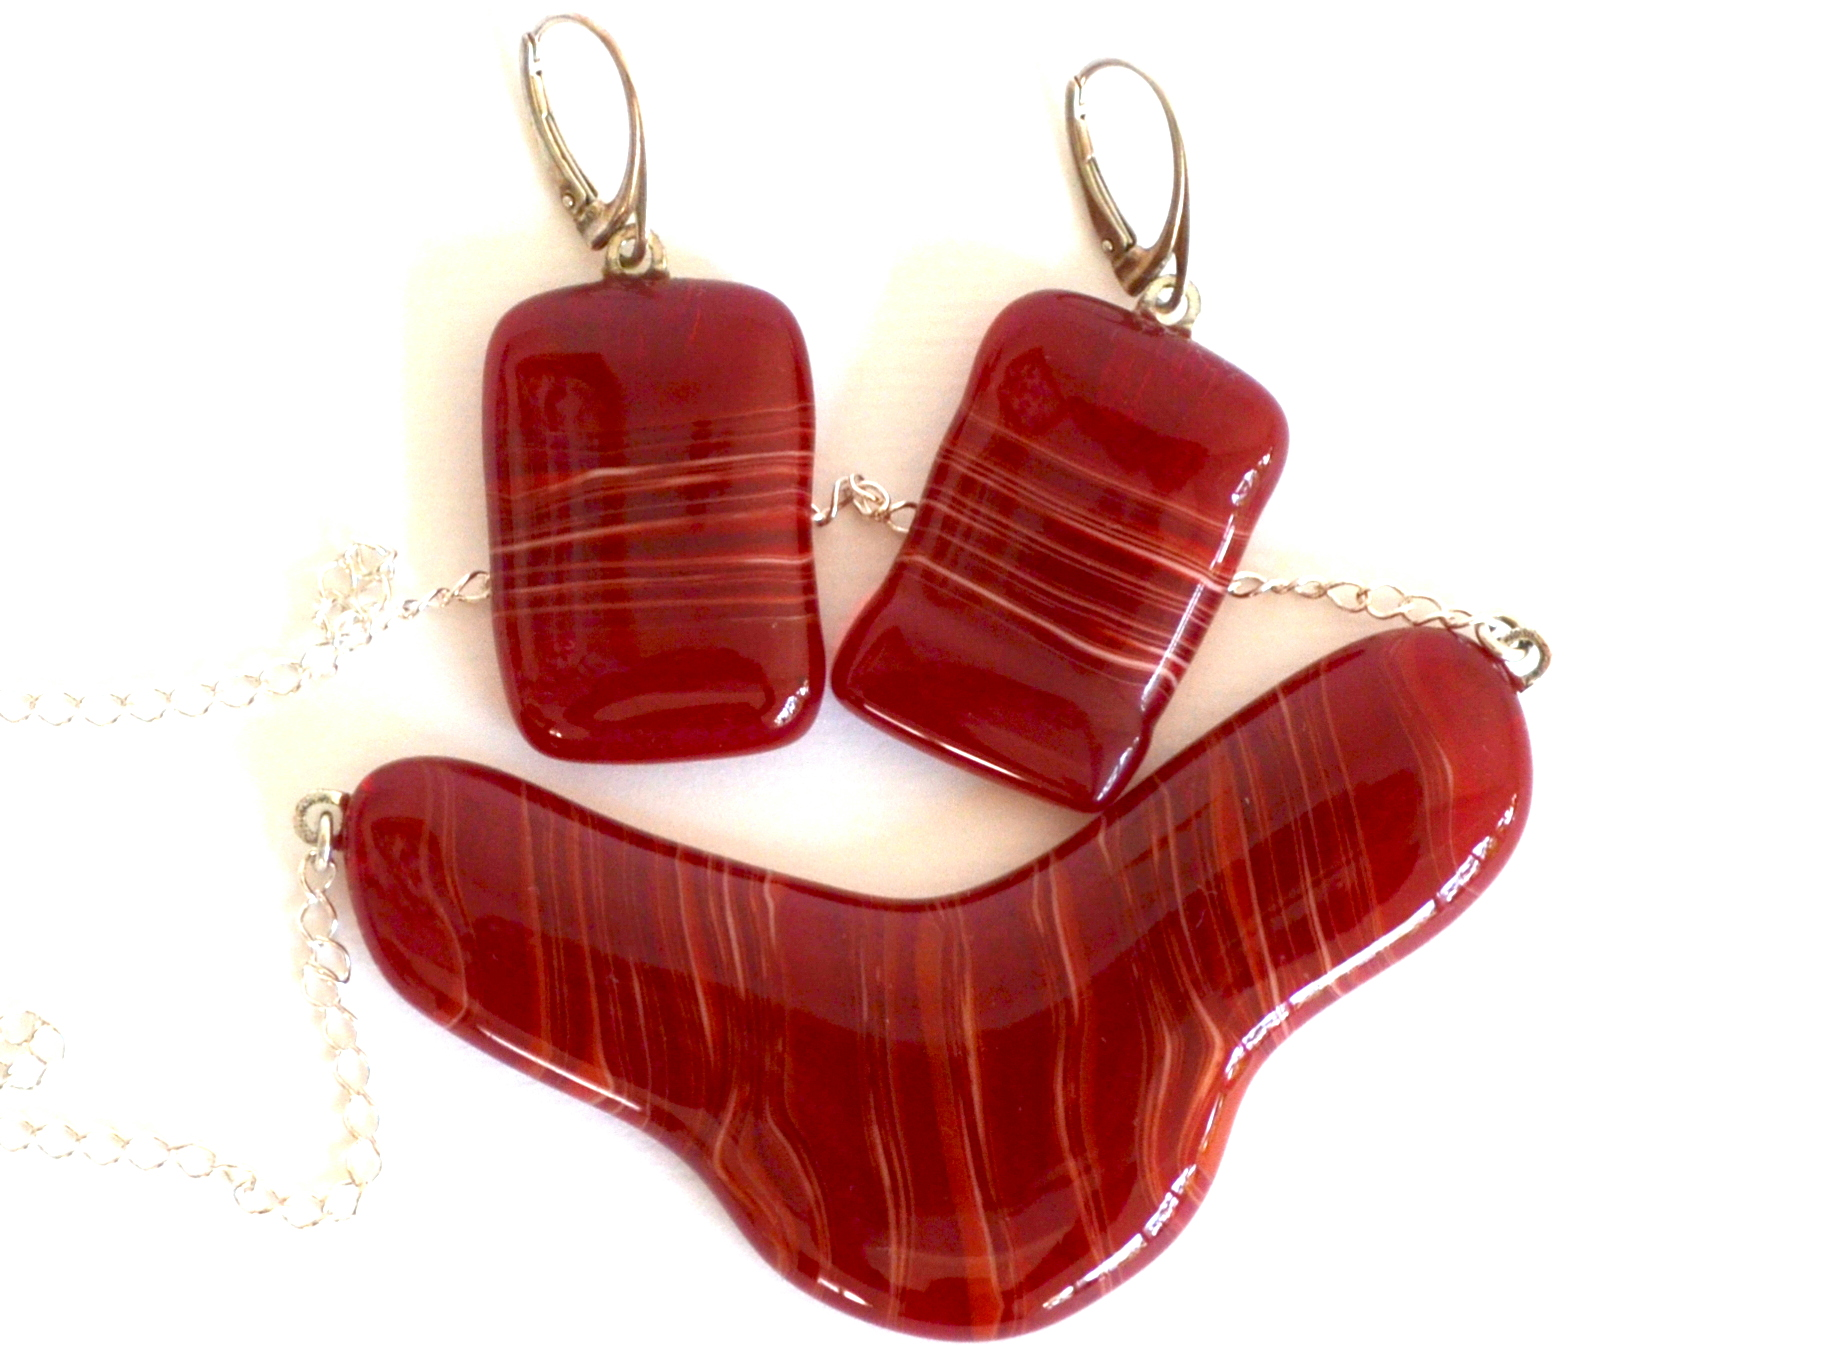 Glass Jewelry Set 'Passion' by Red Point Tailor